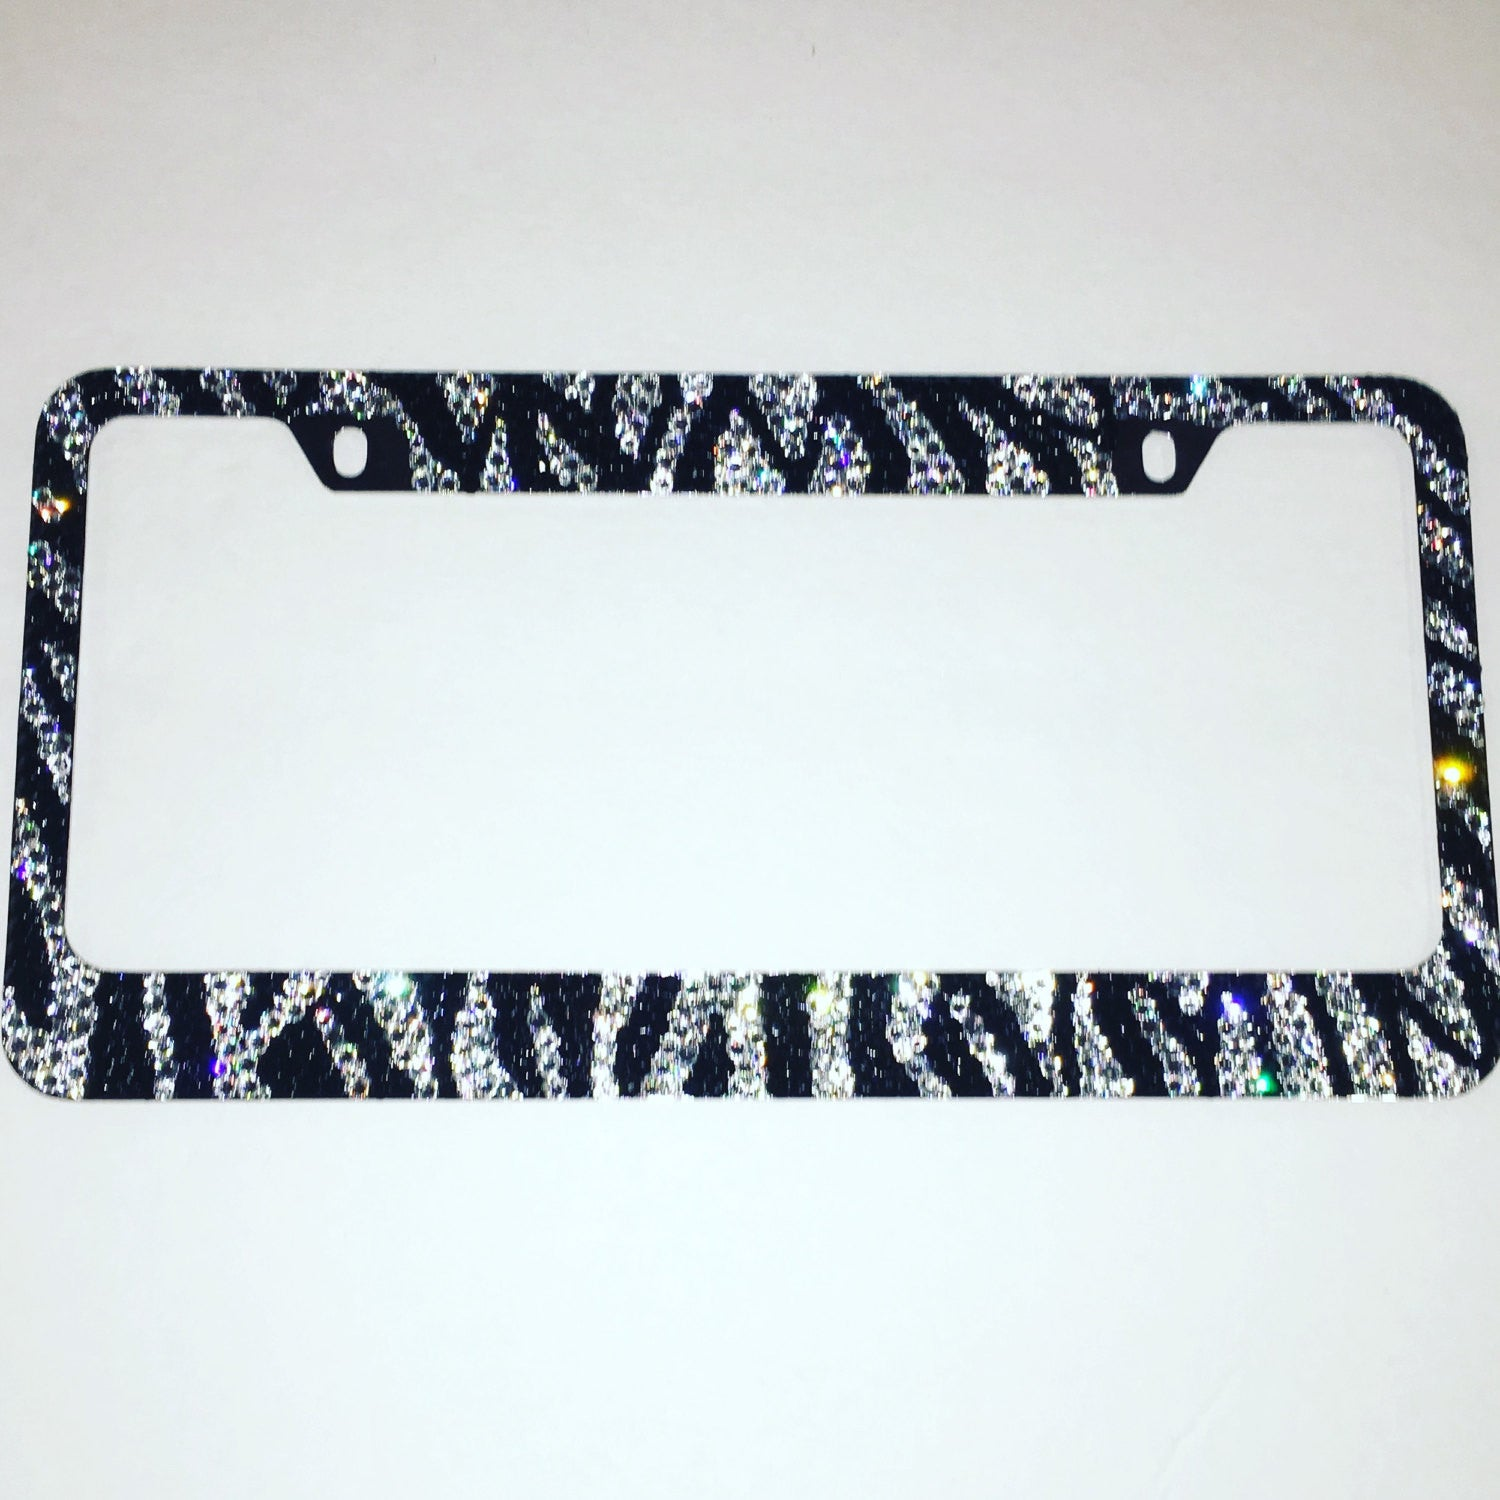 ZEBRA License Plate Frame with Swarovski Crystals * Black & White ...